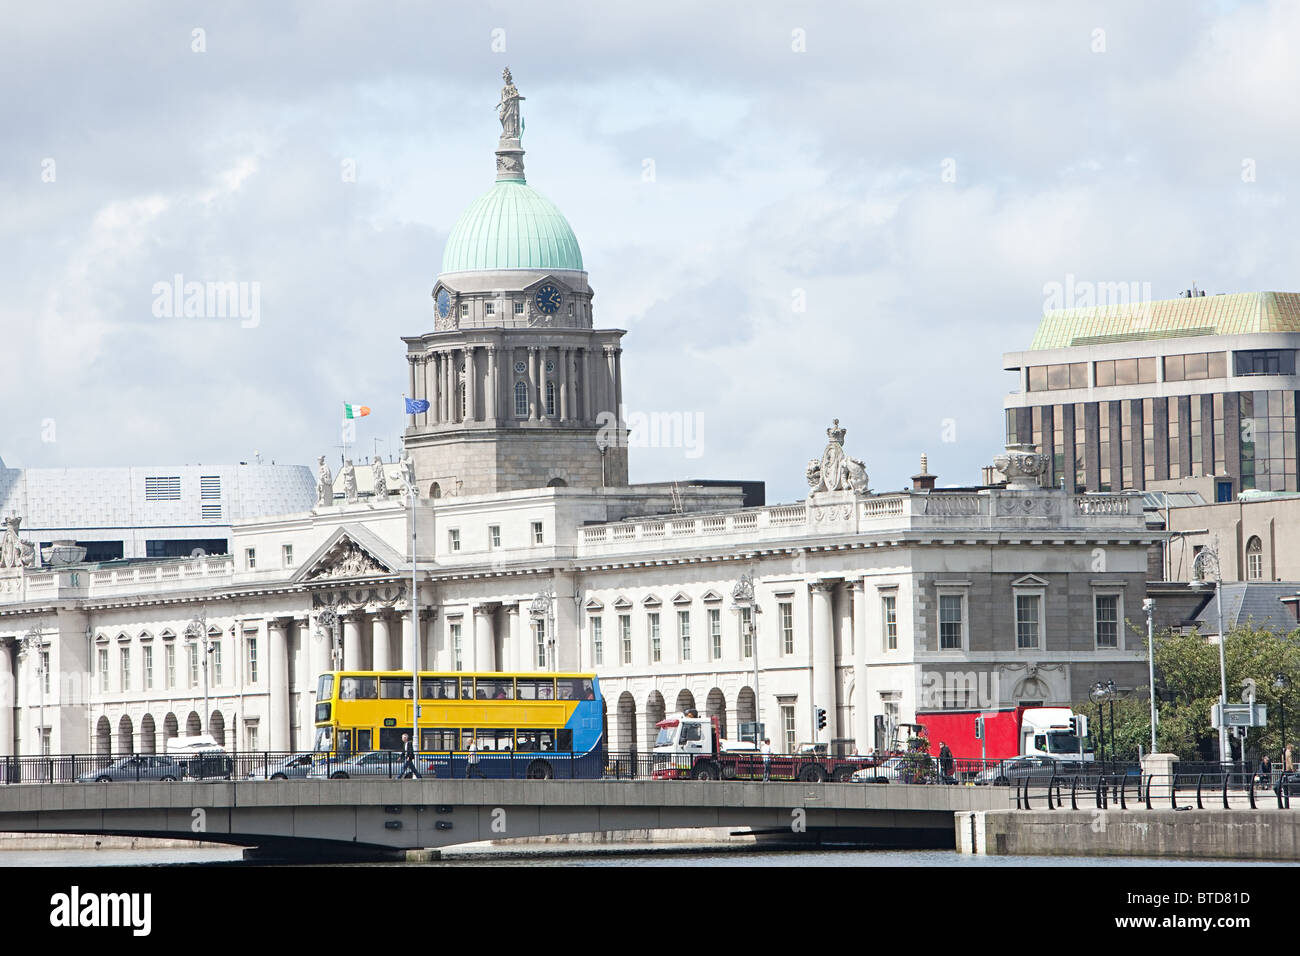 The Custom House and Georges Quay, Dublin, Ireland - Stock Image